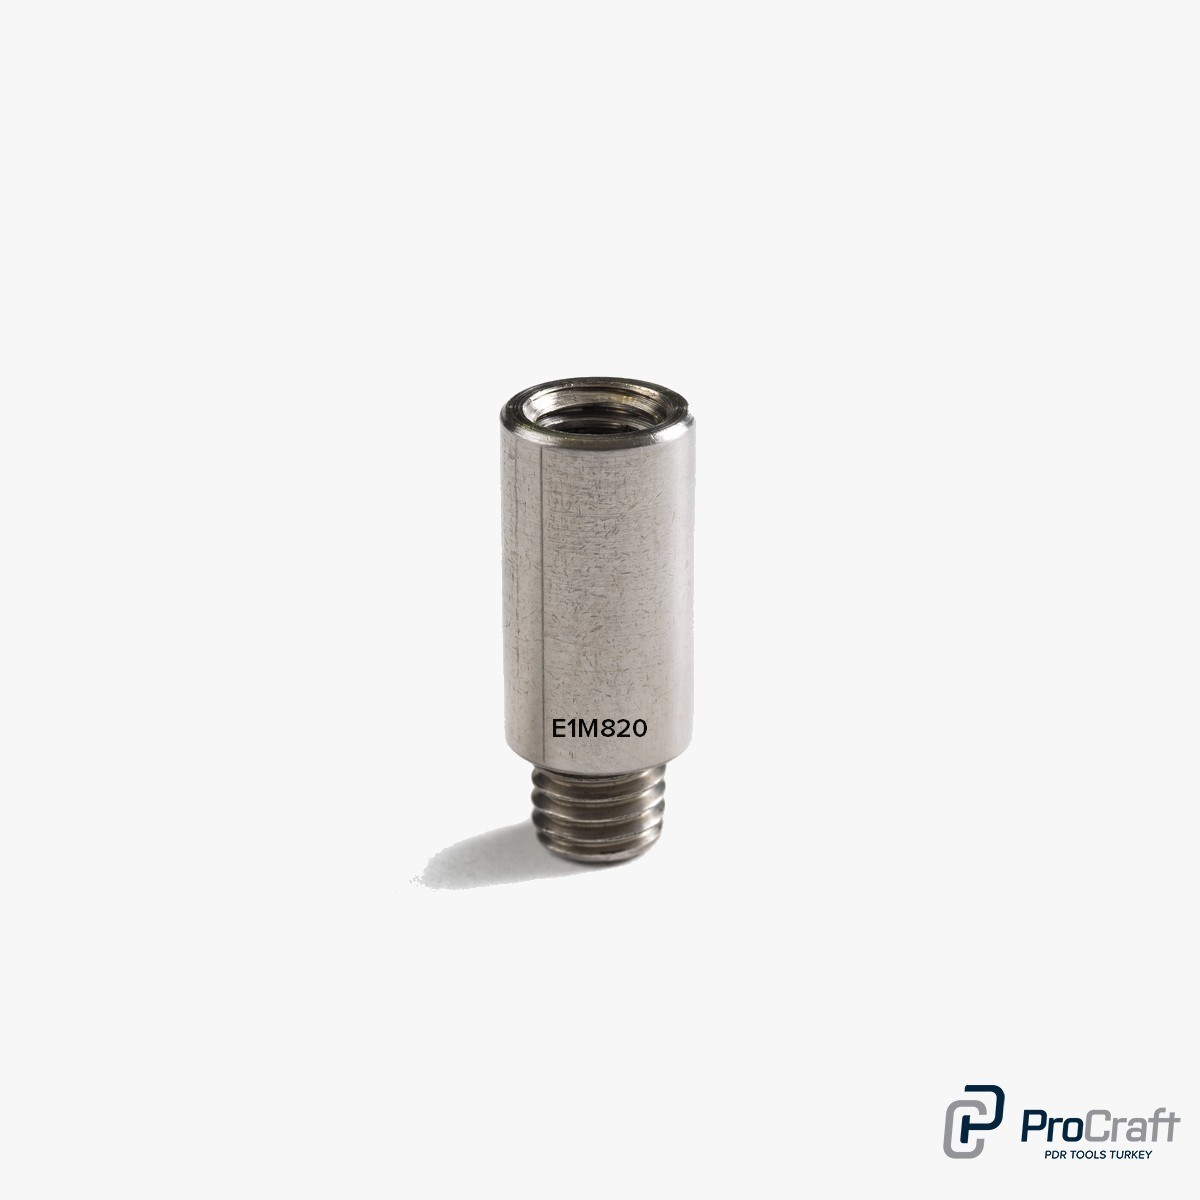 ProCraft PDR Interchangeable tip Extension M8 E1M820